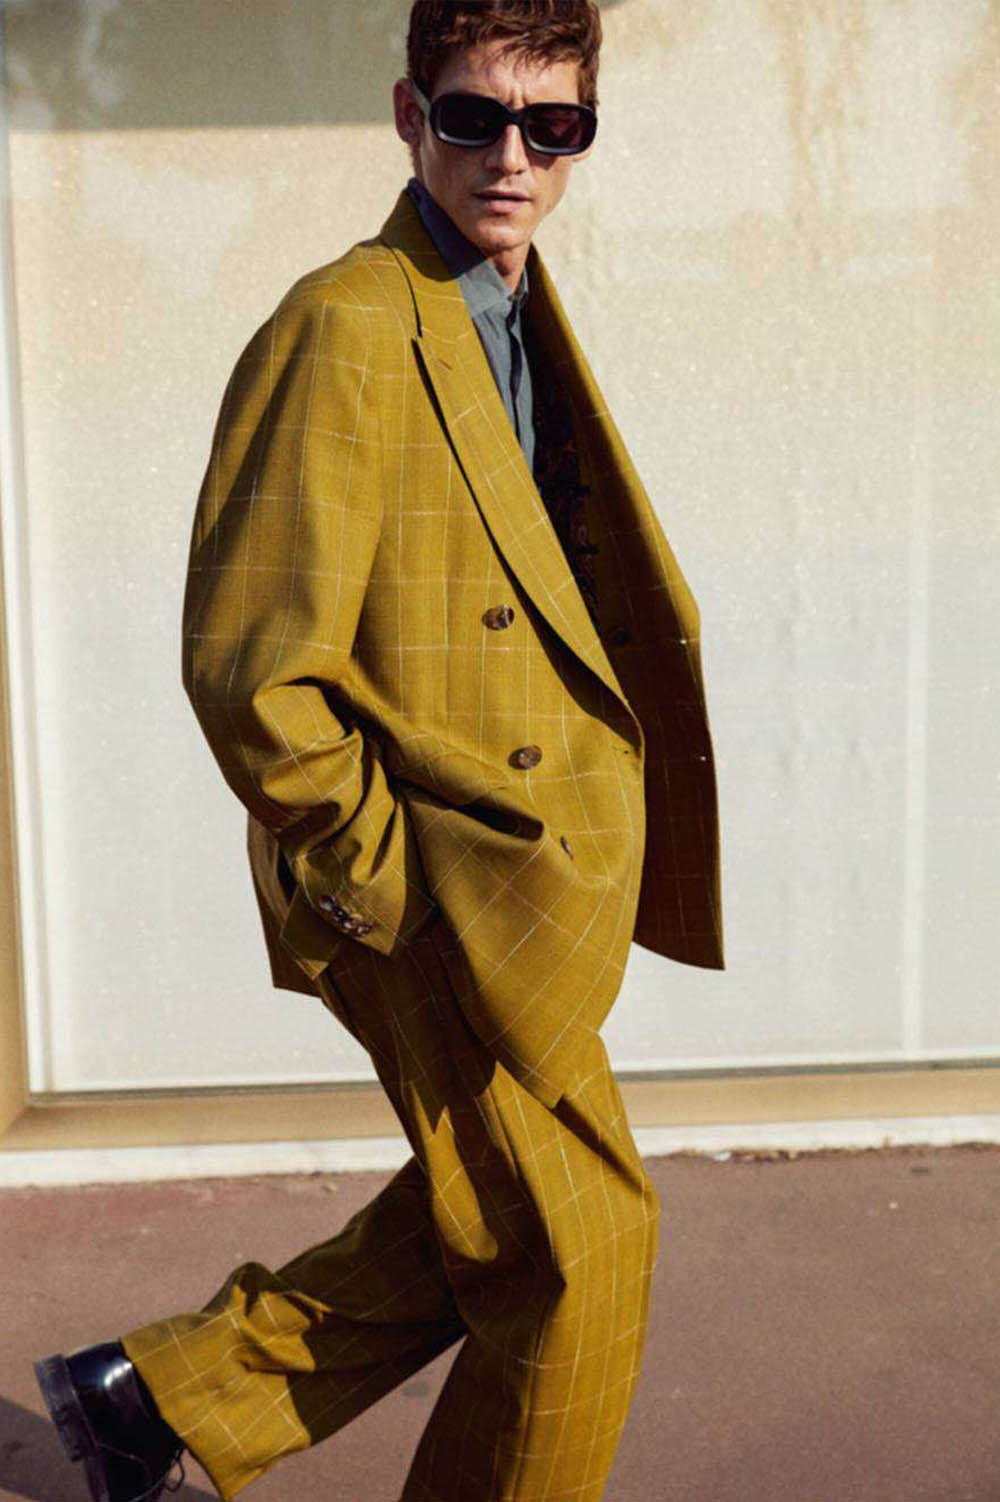 Roch Barbot by Markus Pritzi for GQ France April 2019